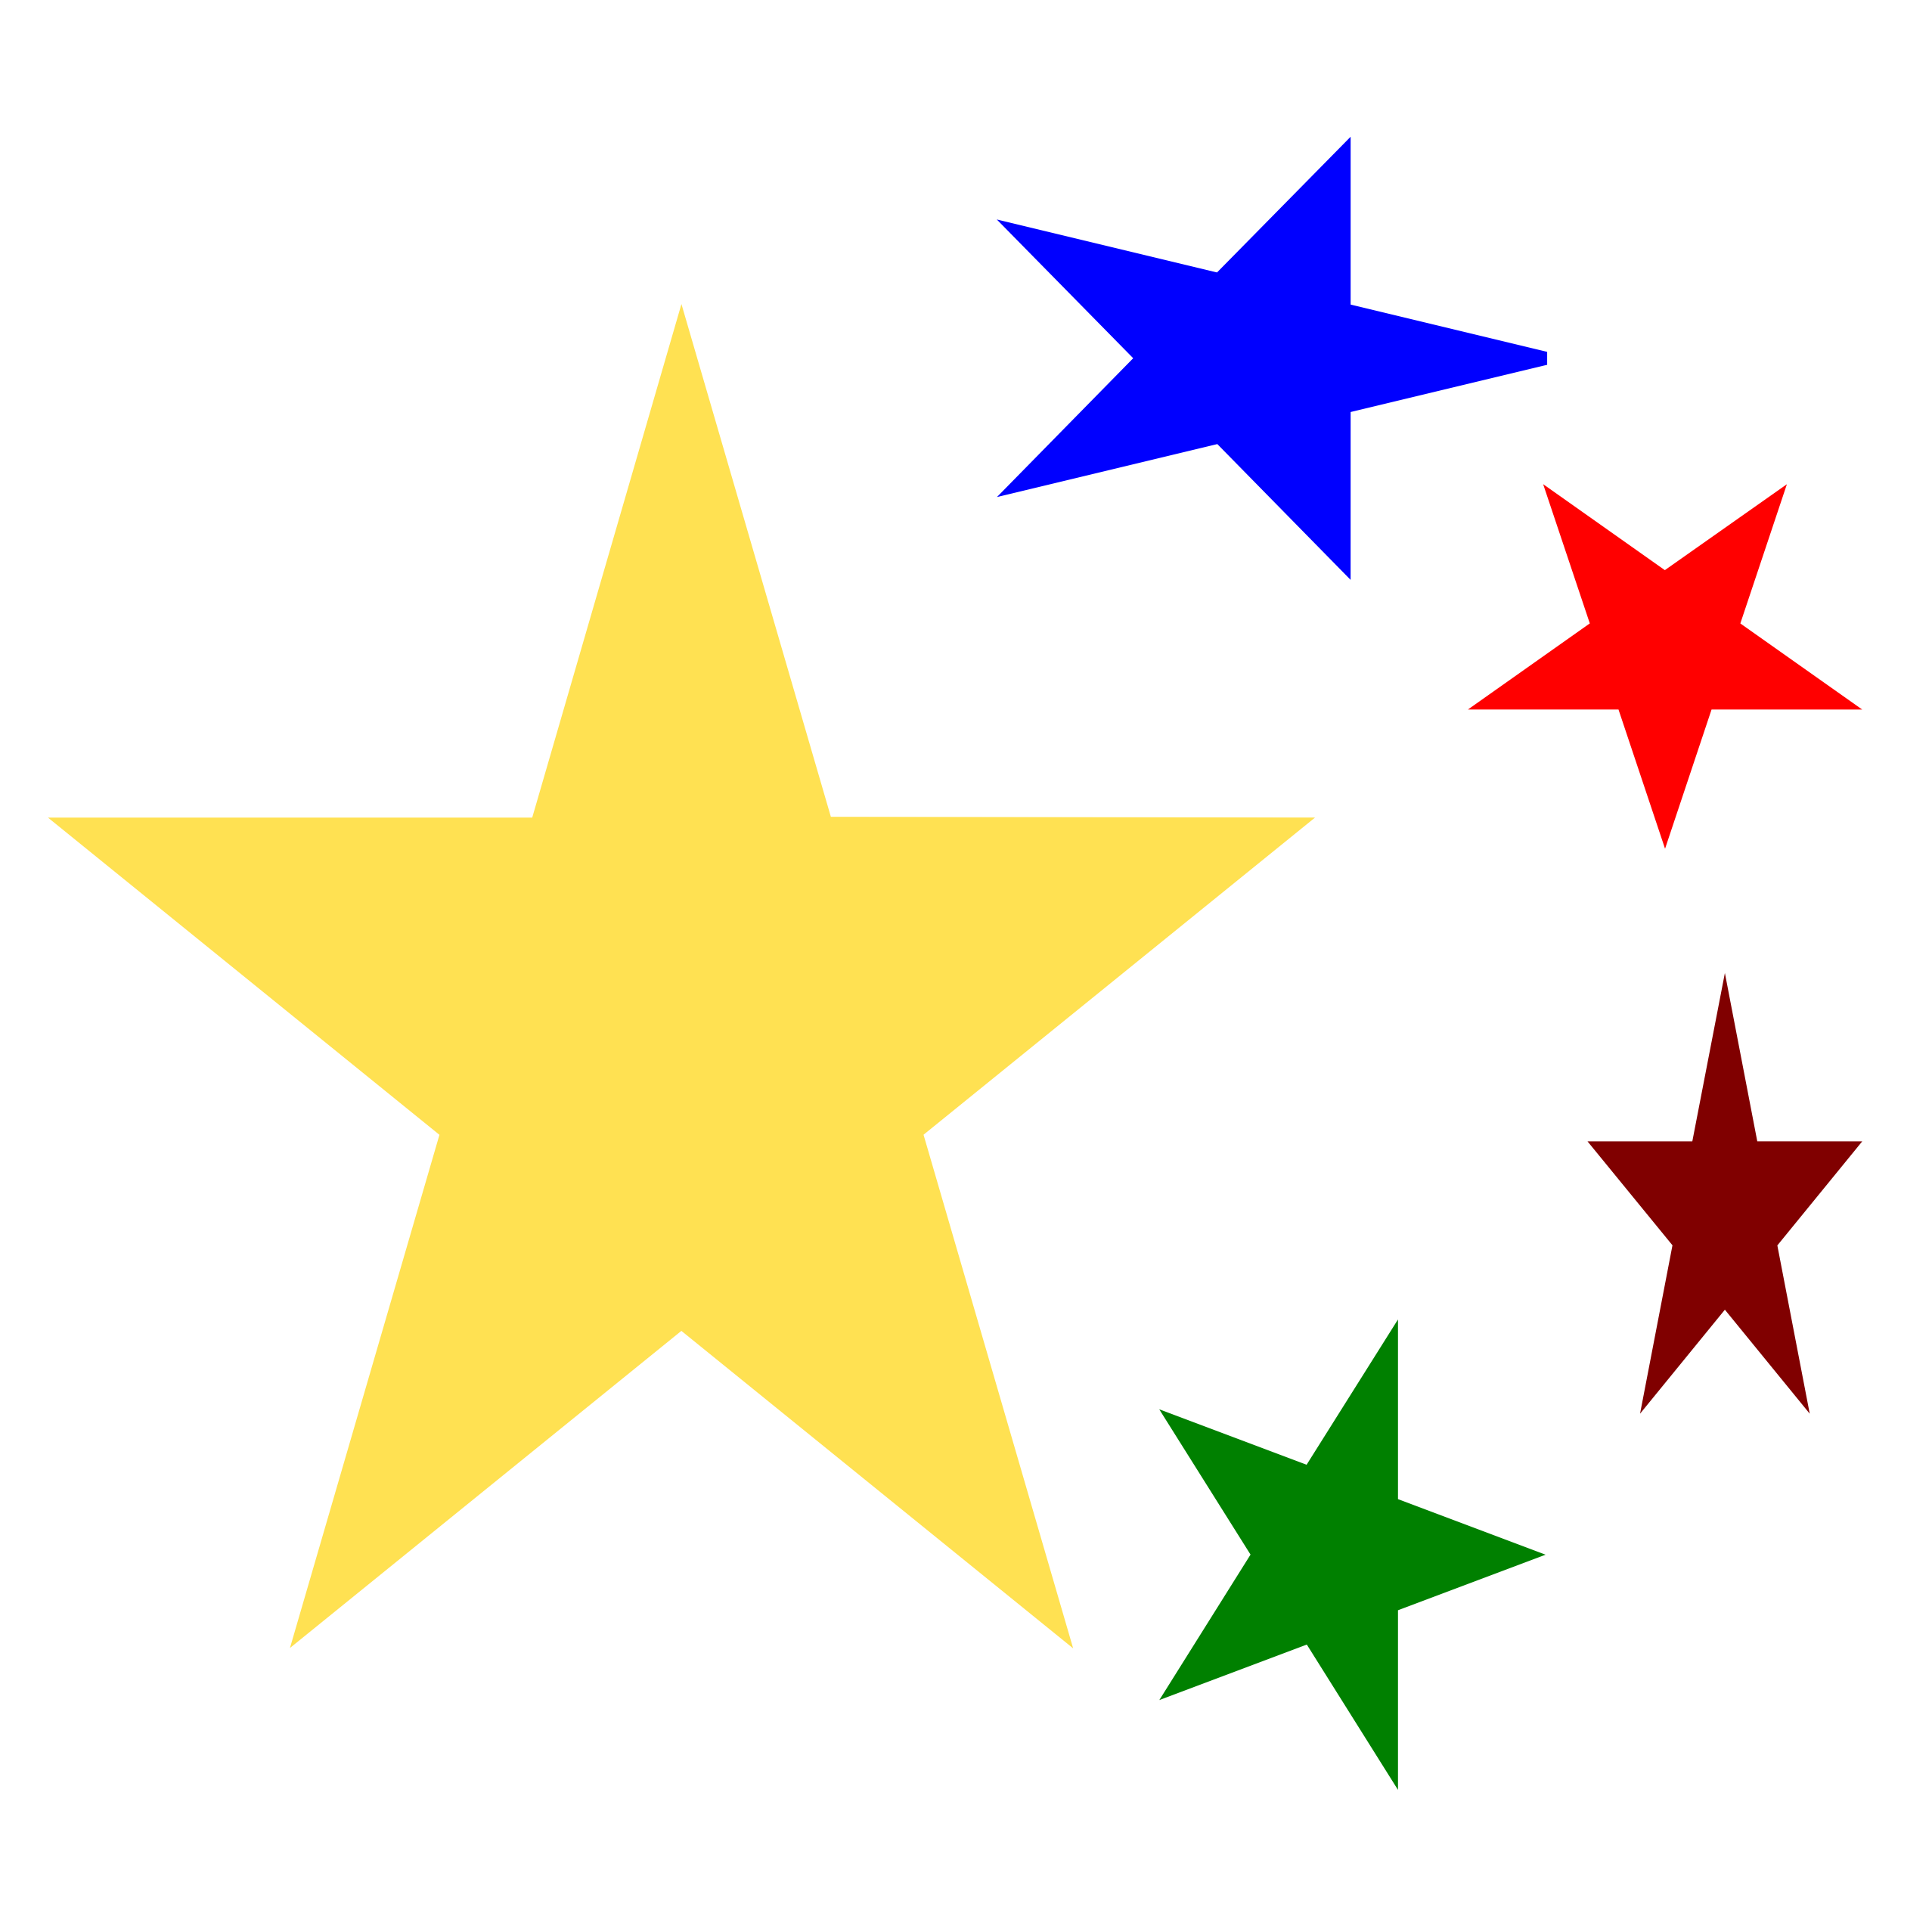 2555x2555 Free Gold Star Clipart Public Domain Gold Star Clip Art Images 3